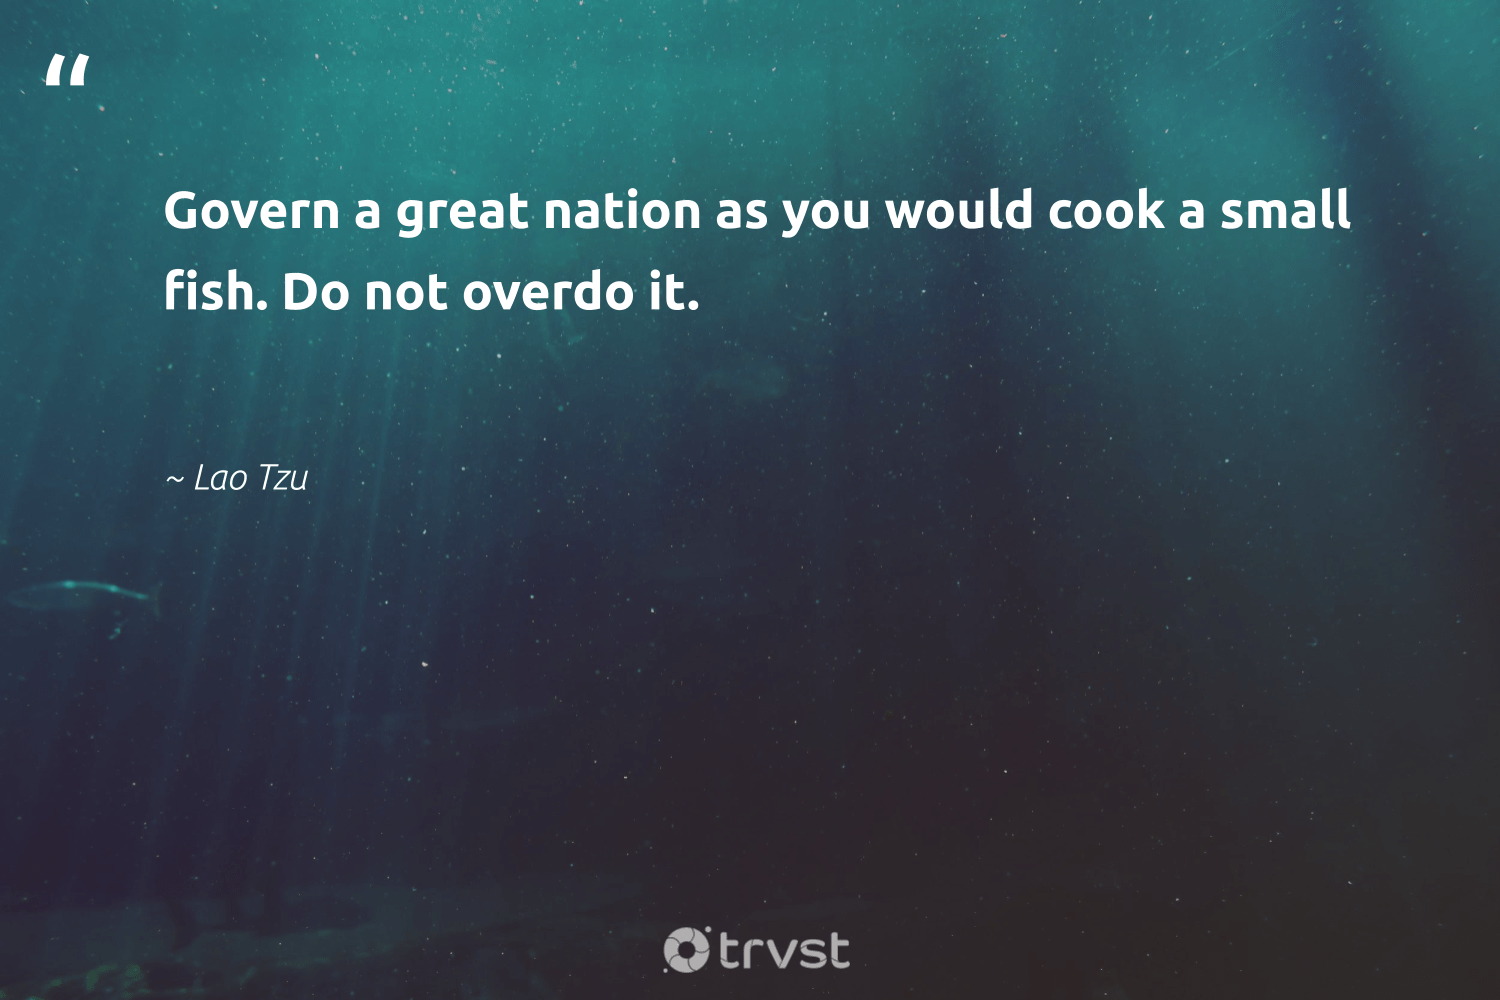 """""""Govern a great nation as you would cook a small fish. Do not overdo it.""""  - Lao Tzu #trvst #quotes #fish #protecttheoceans #bethechange #conservation #changetheworld #oceanconservation #socialchange #nature #planetearthfirst #biodiversity"""